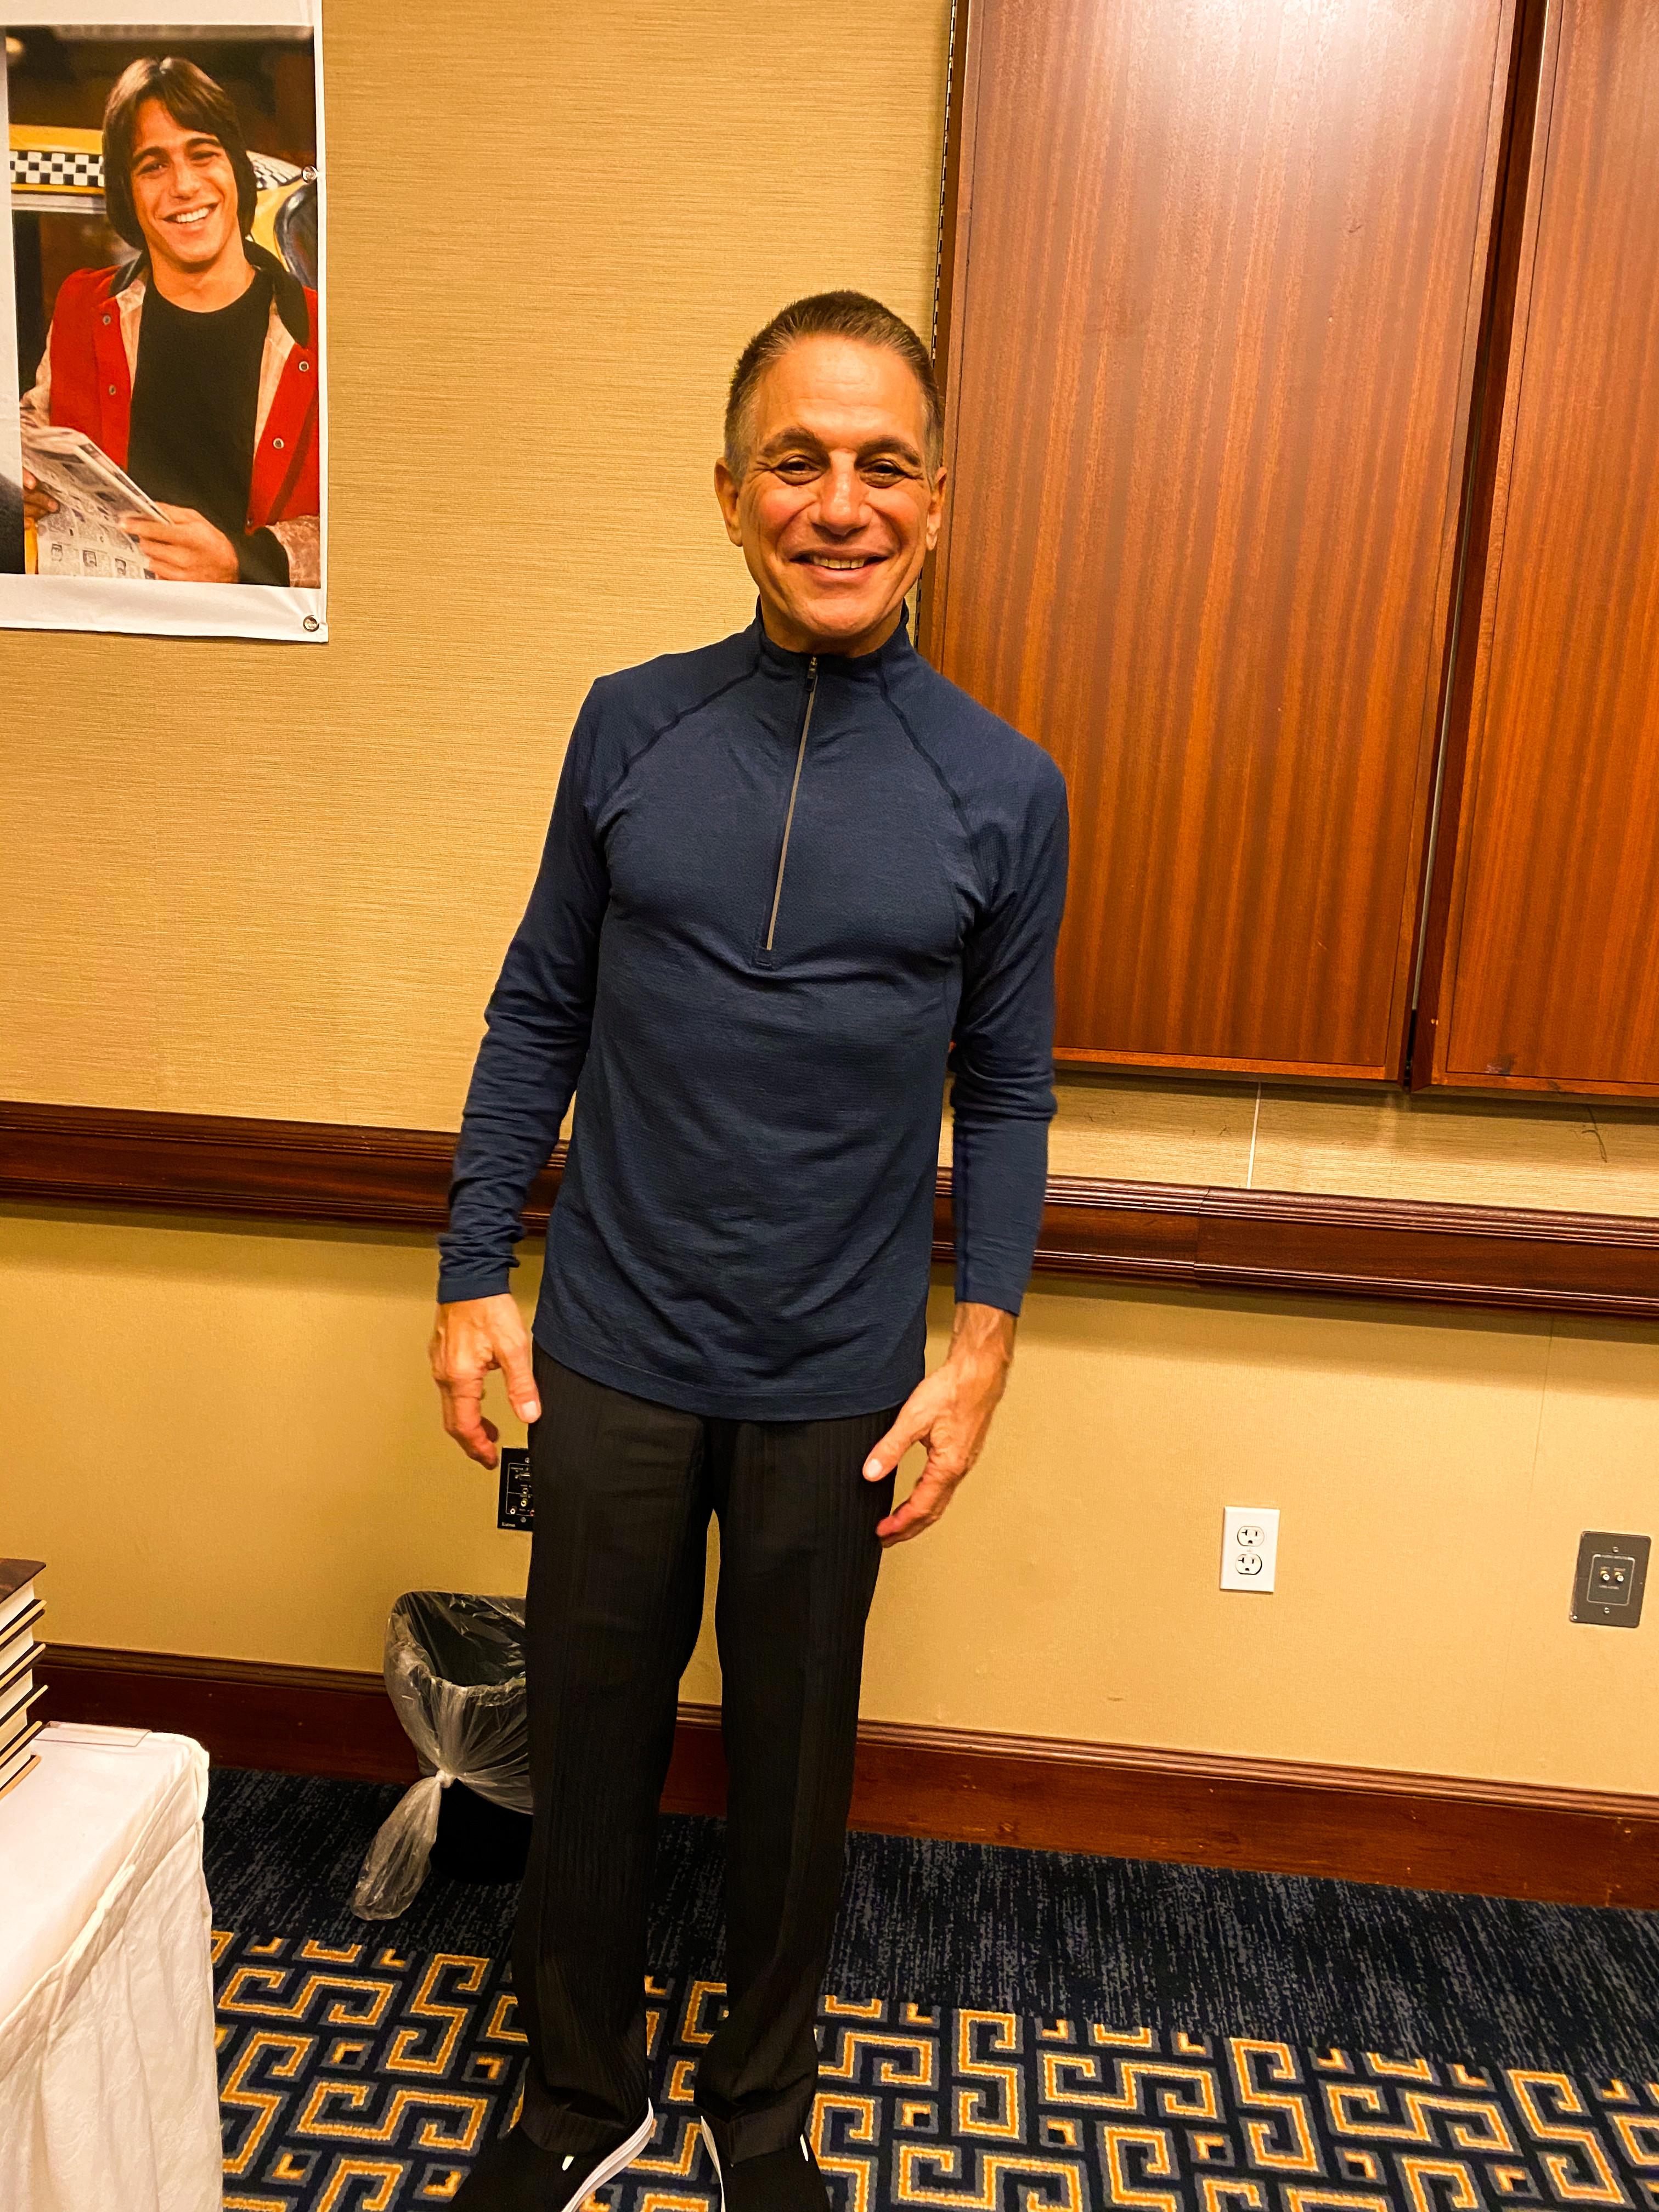 Tony Danza (Who's the Boss).